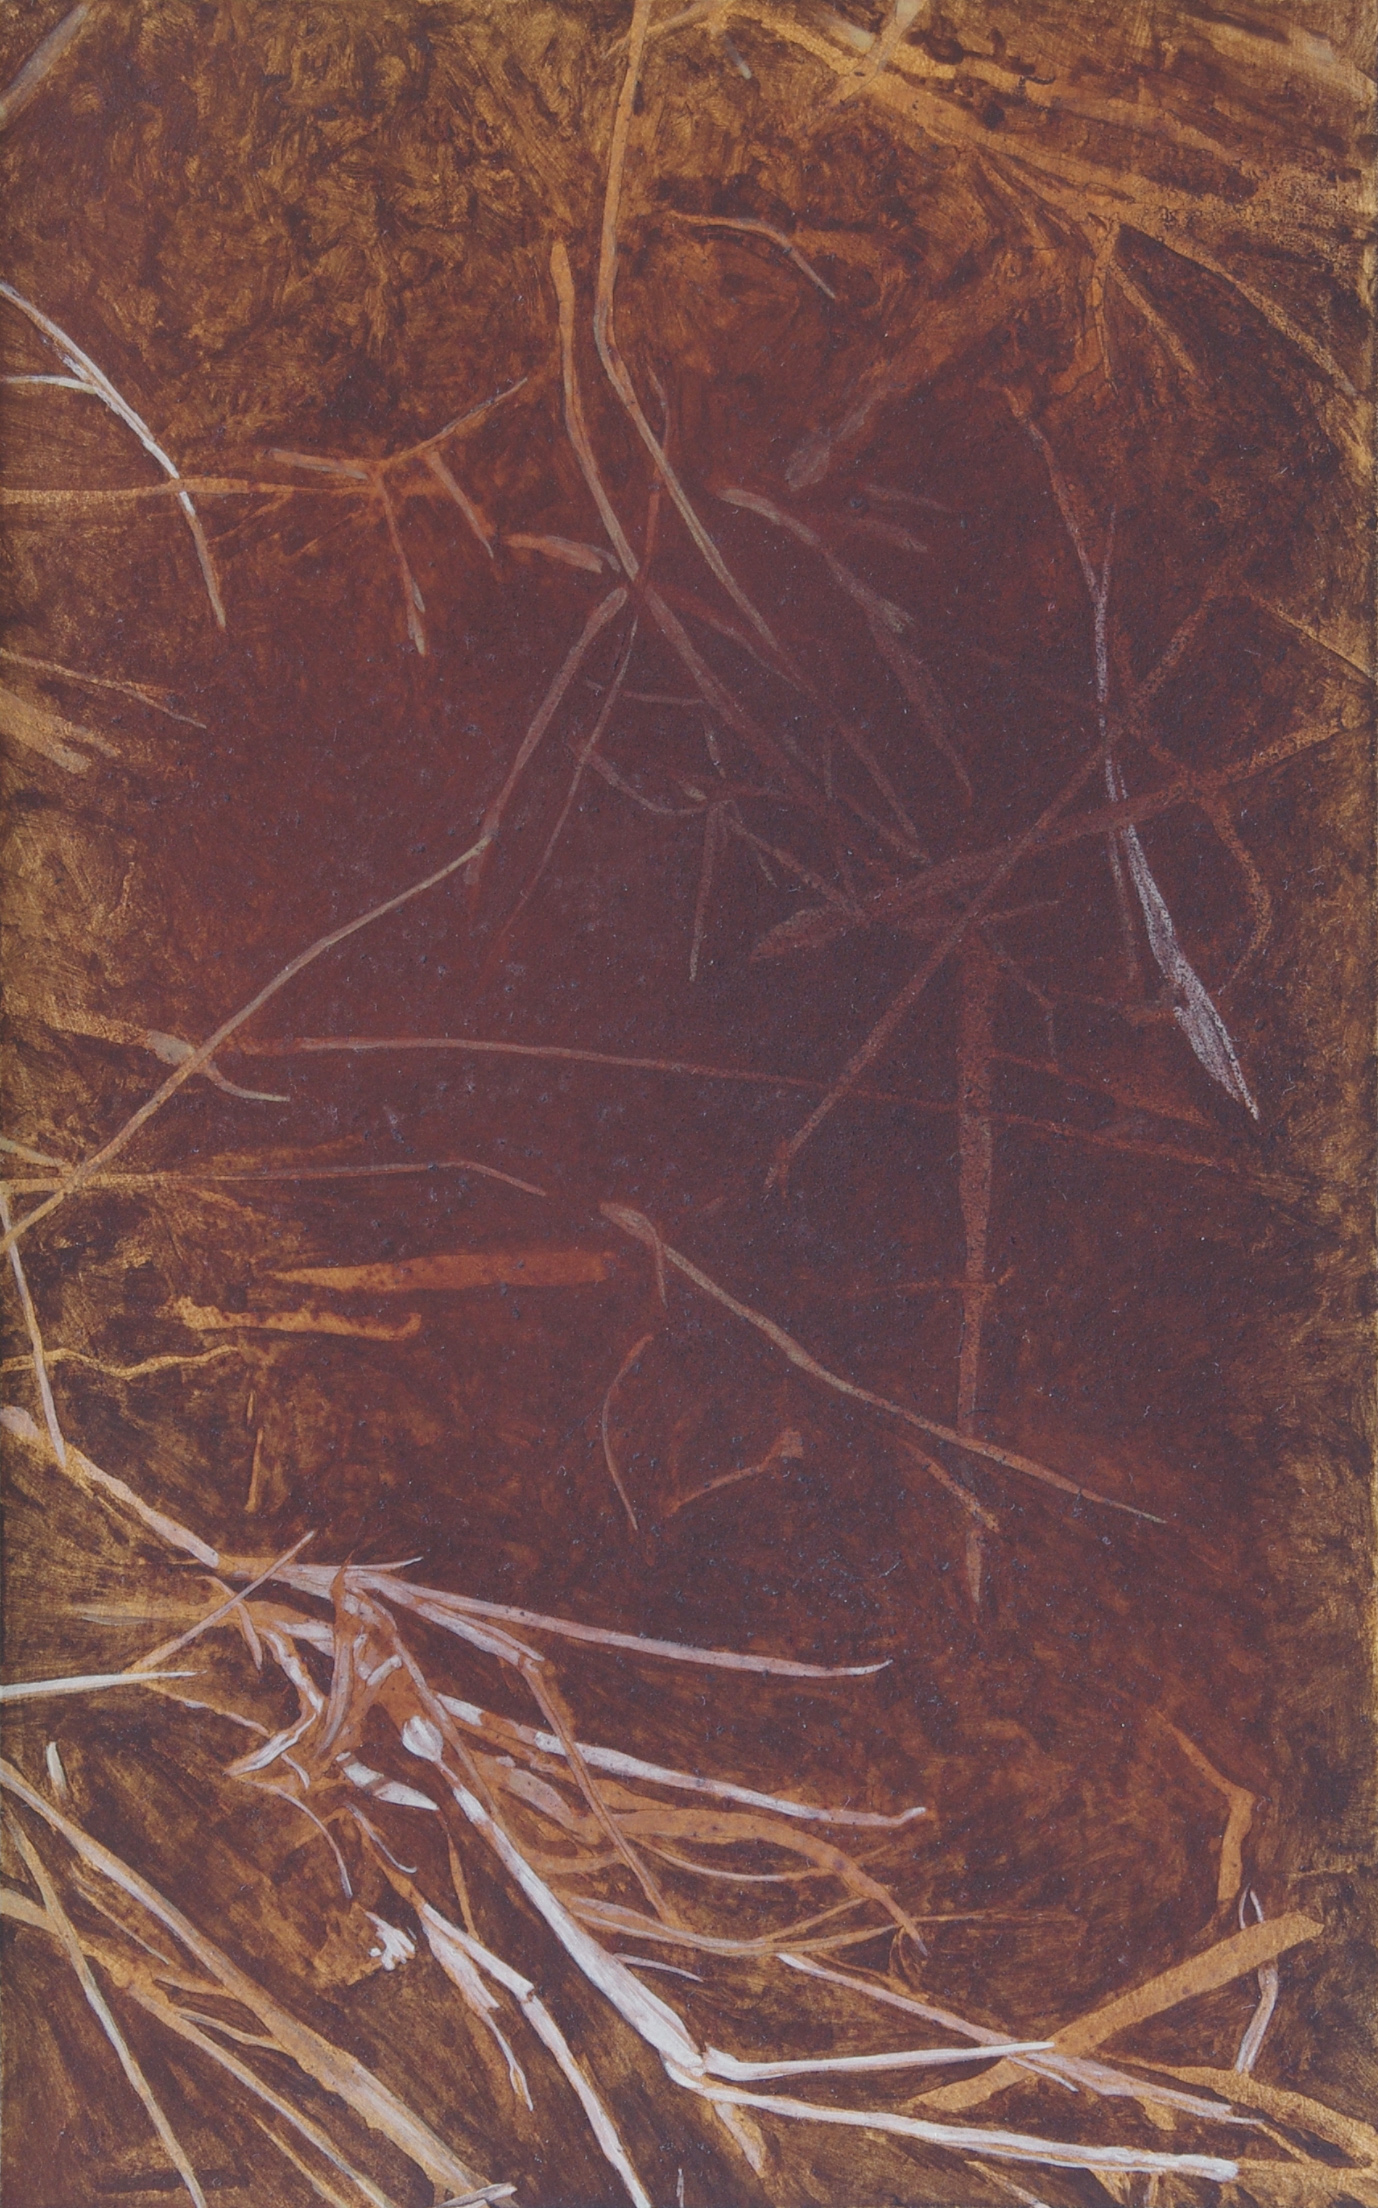 <p><strong>Iron Ground 2 </strong><br />Casein and poppy oil - 25 x 40 cm </p>